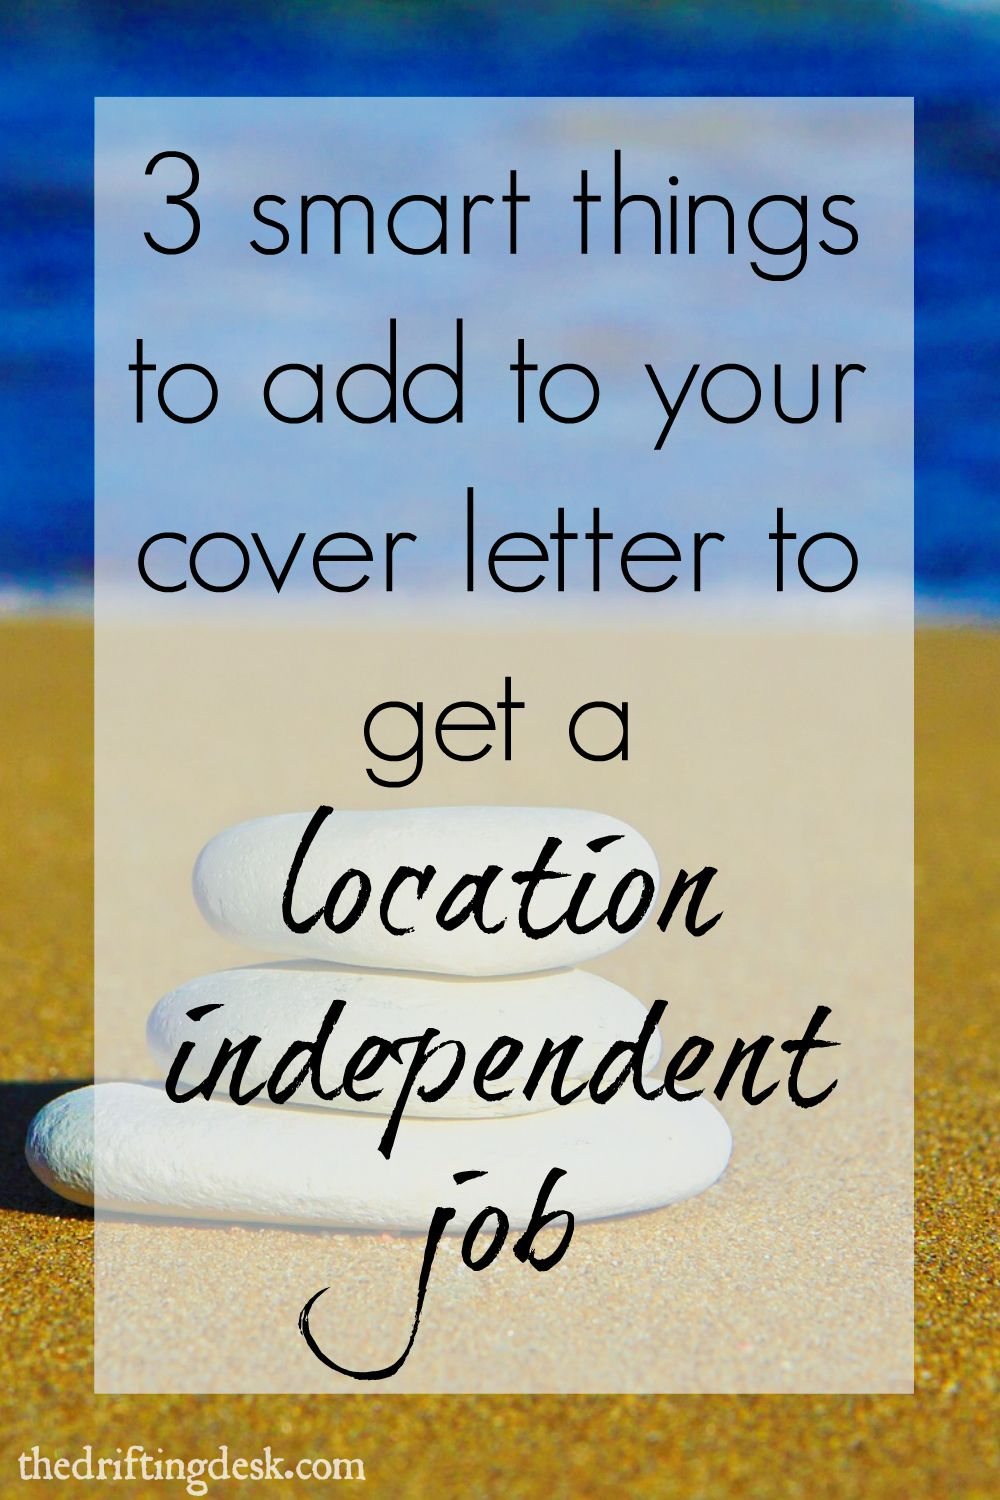 3 Things To Add To Your Cover Letter To Get A Location